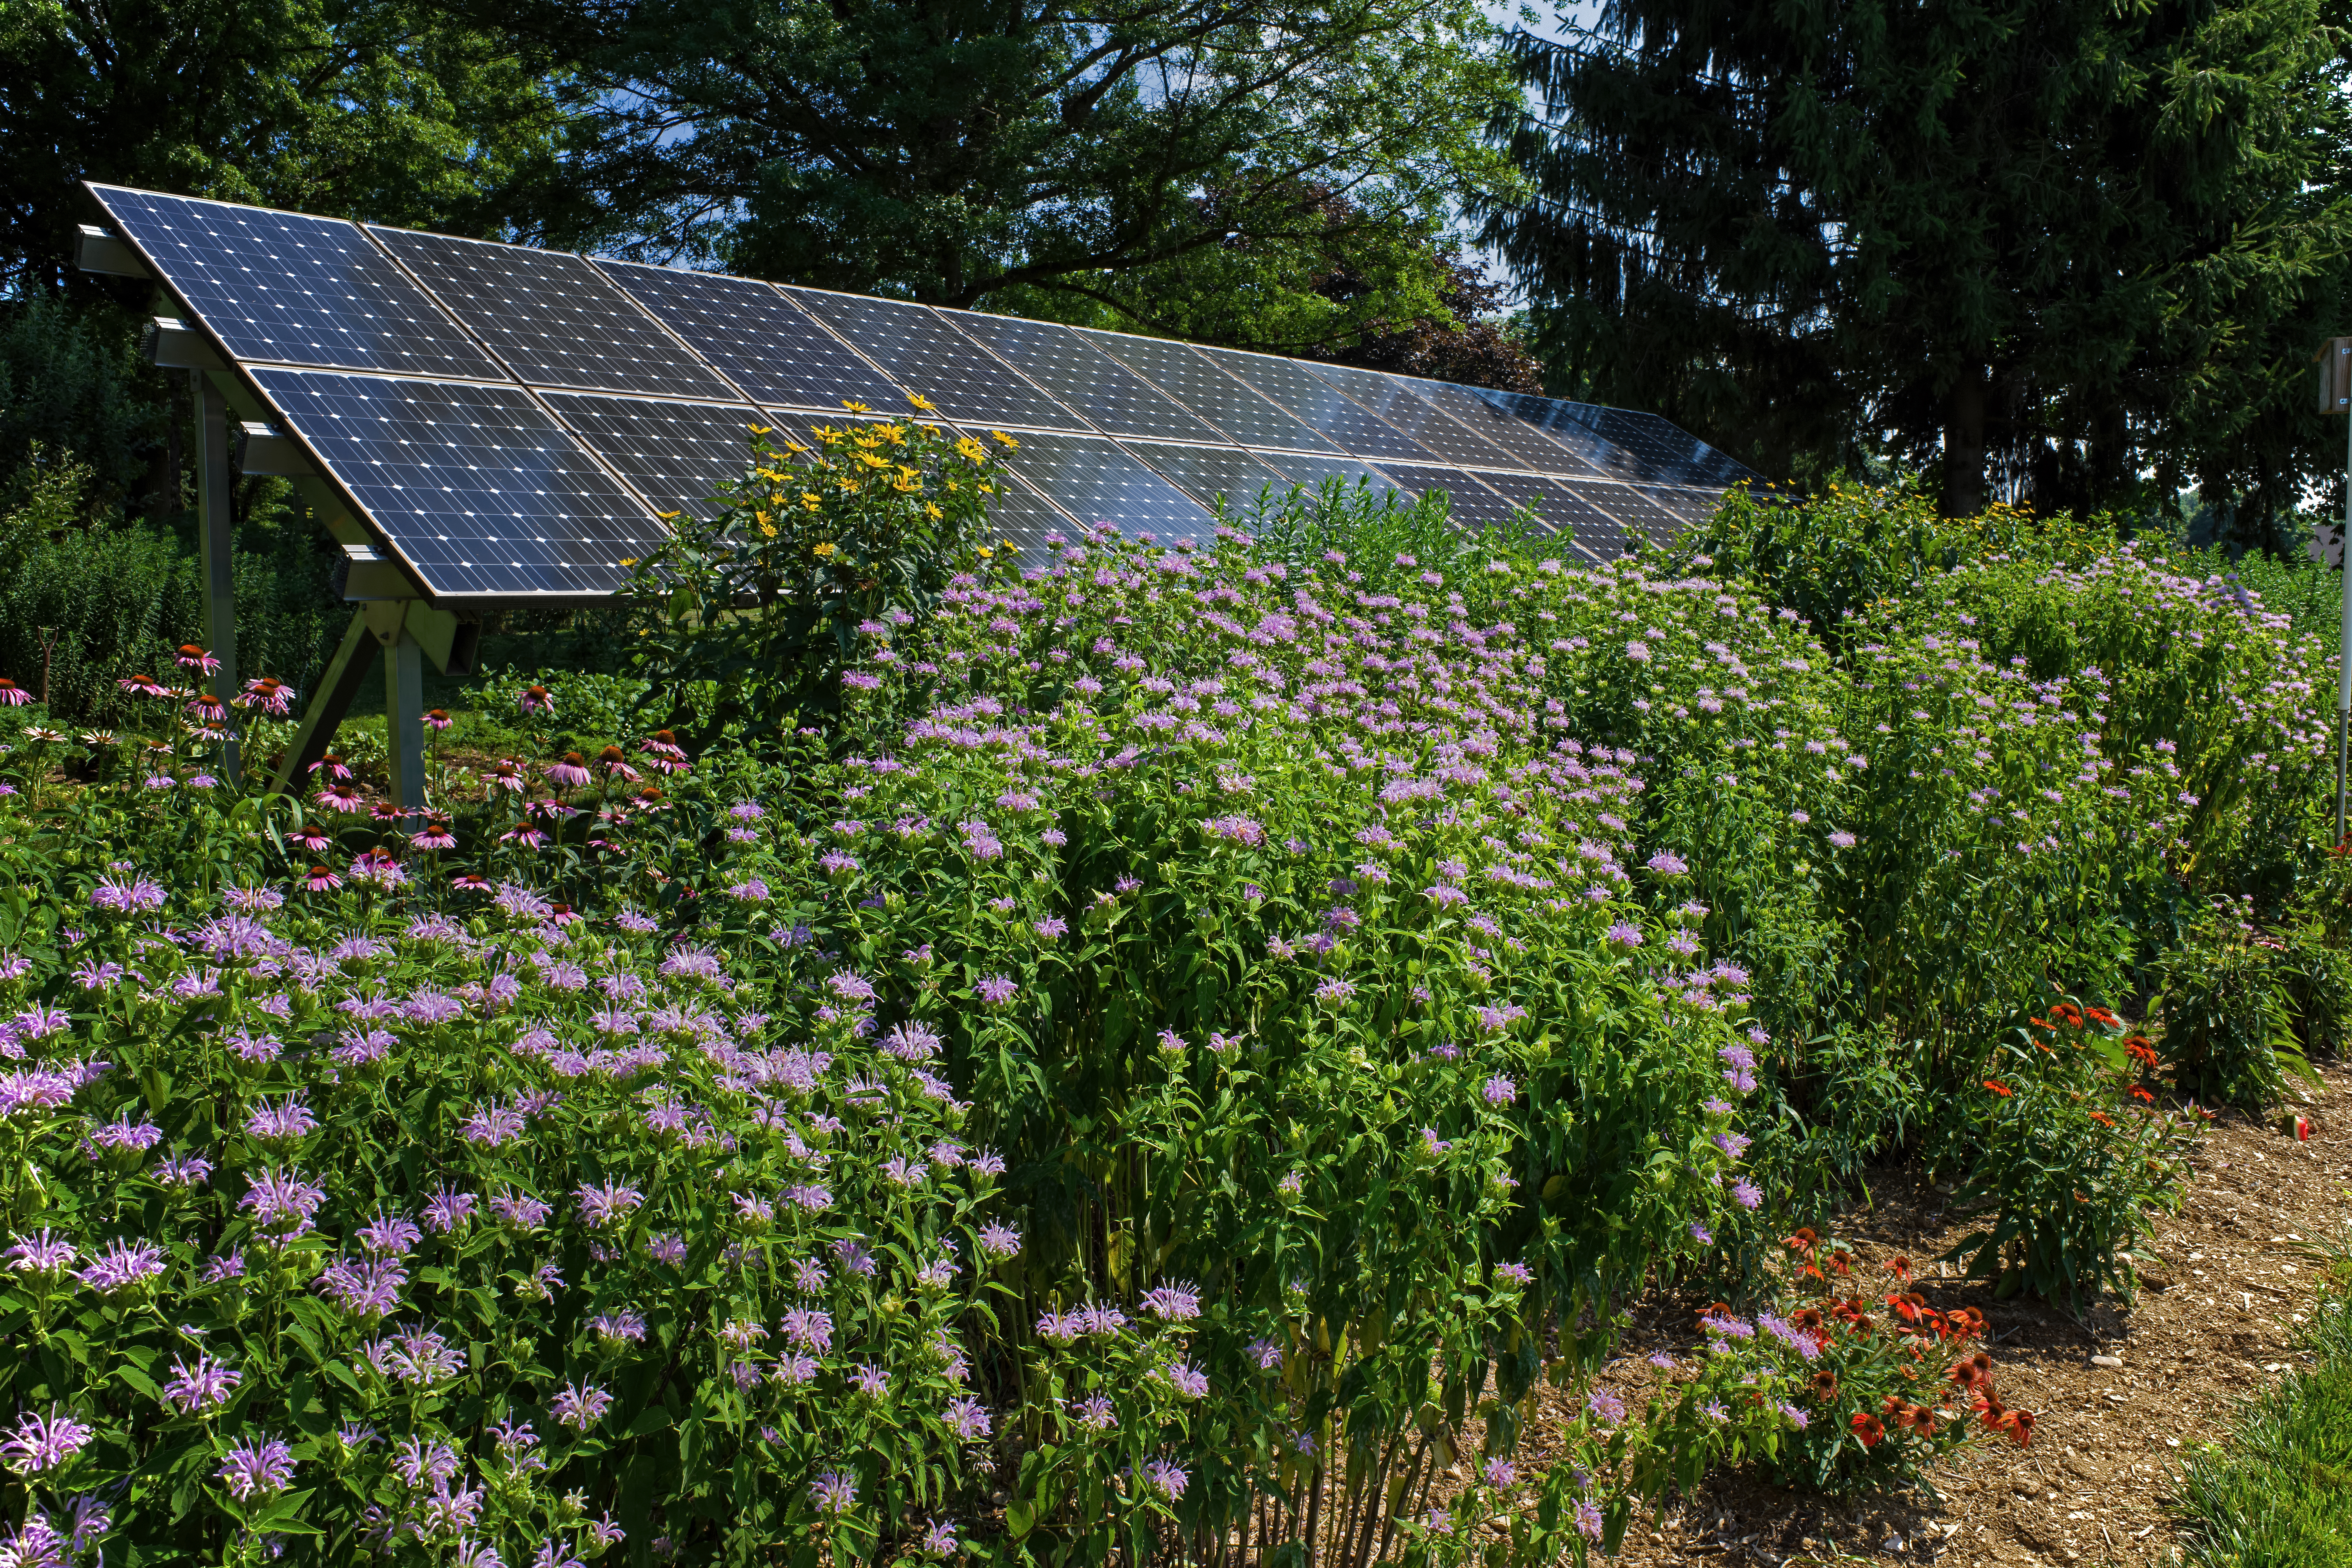 Pollinator garden, butterfly garden and solar panels on a bright summer's day.